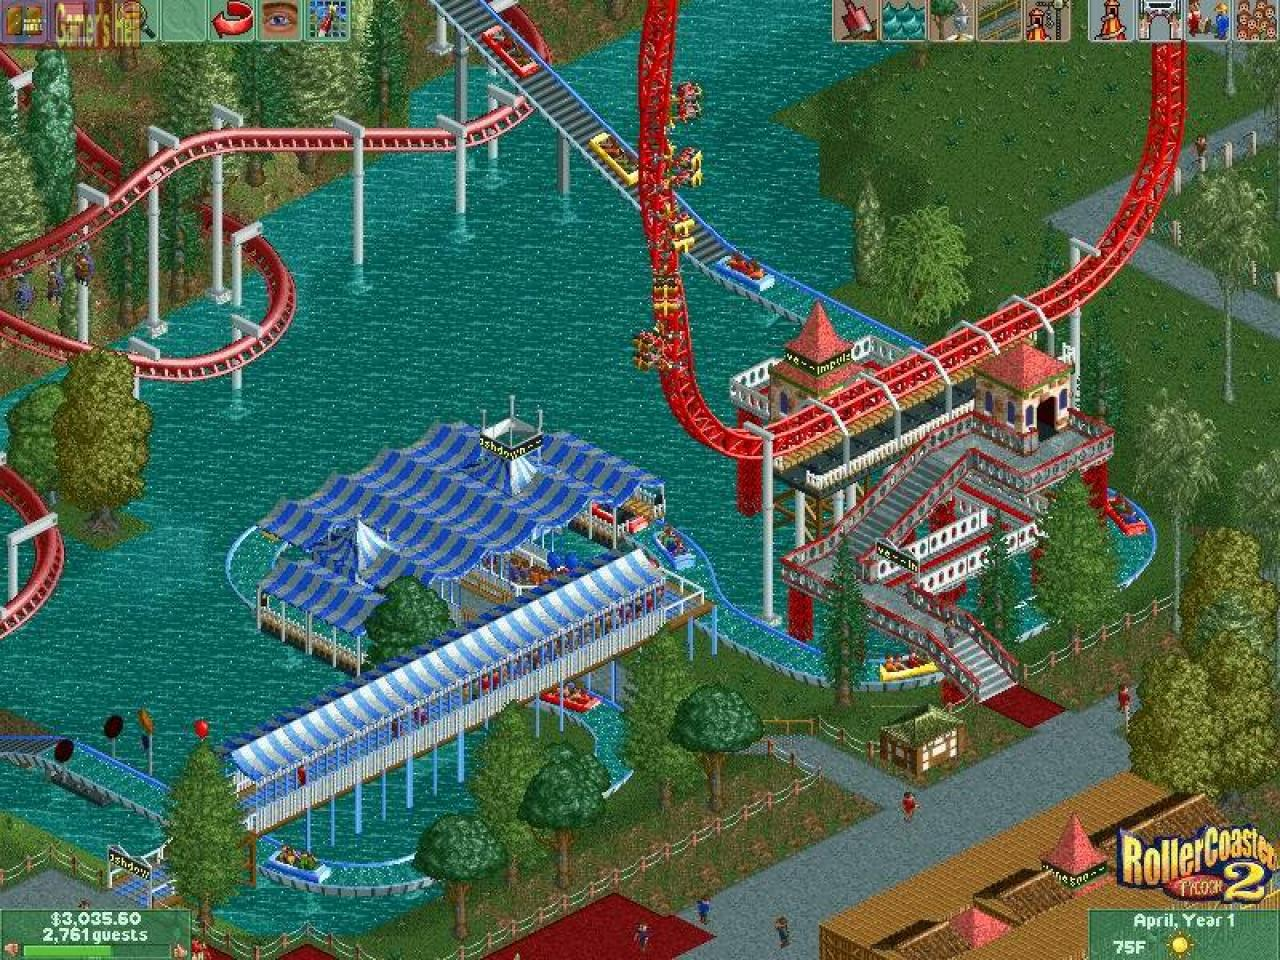 Roller coaster tycoon nude patch anime scenes